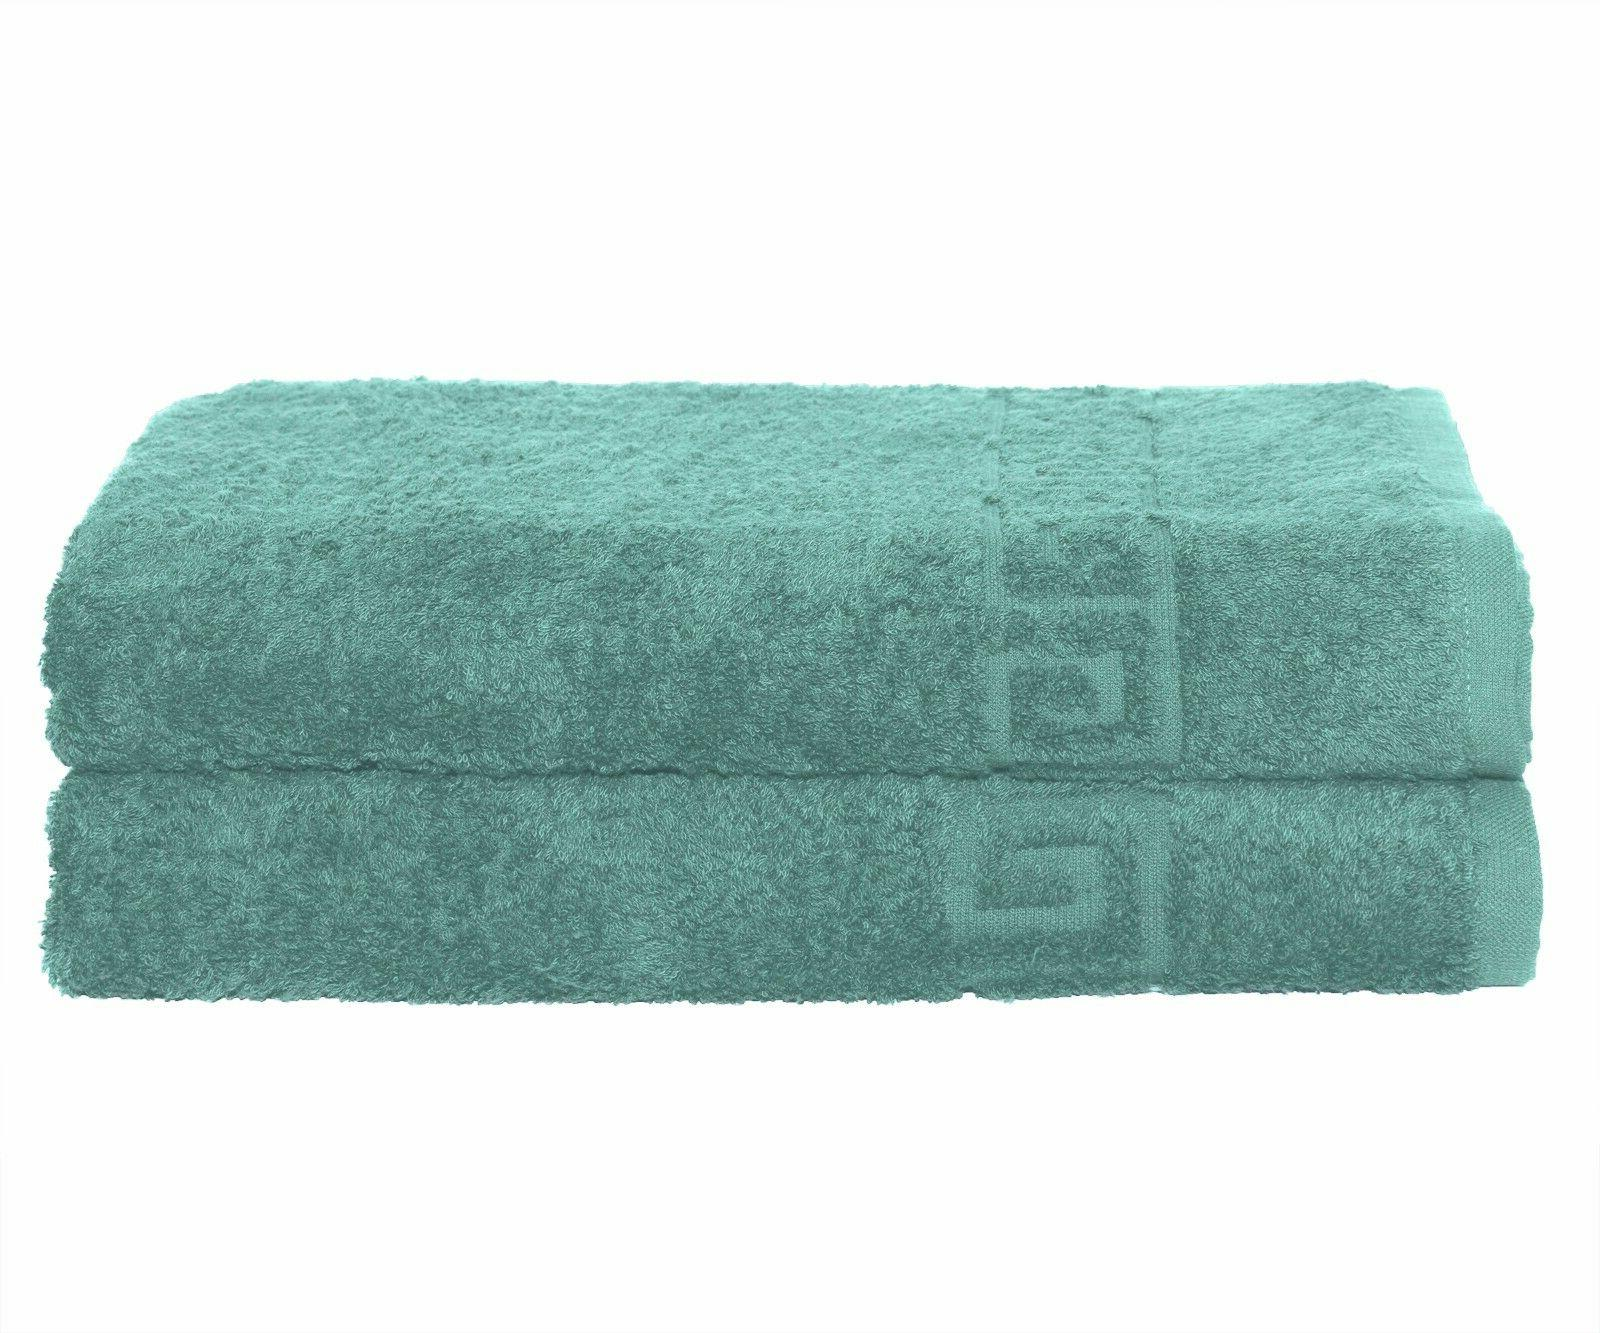 Towels or Hand 100% Cotton